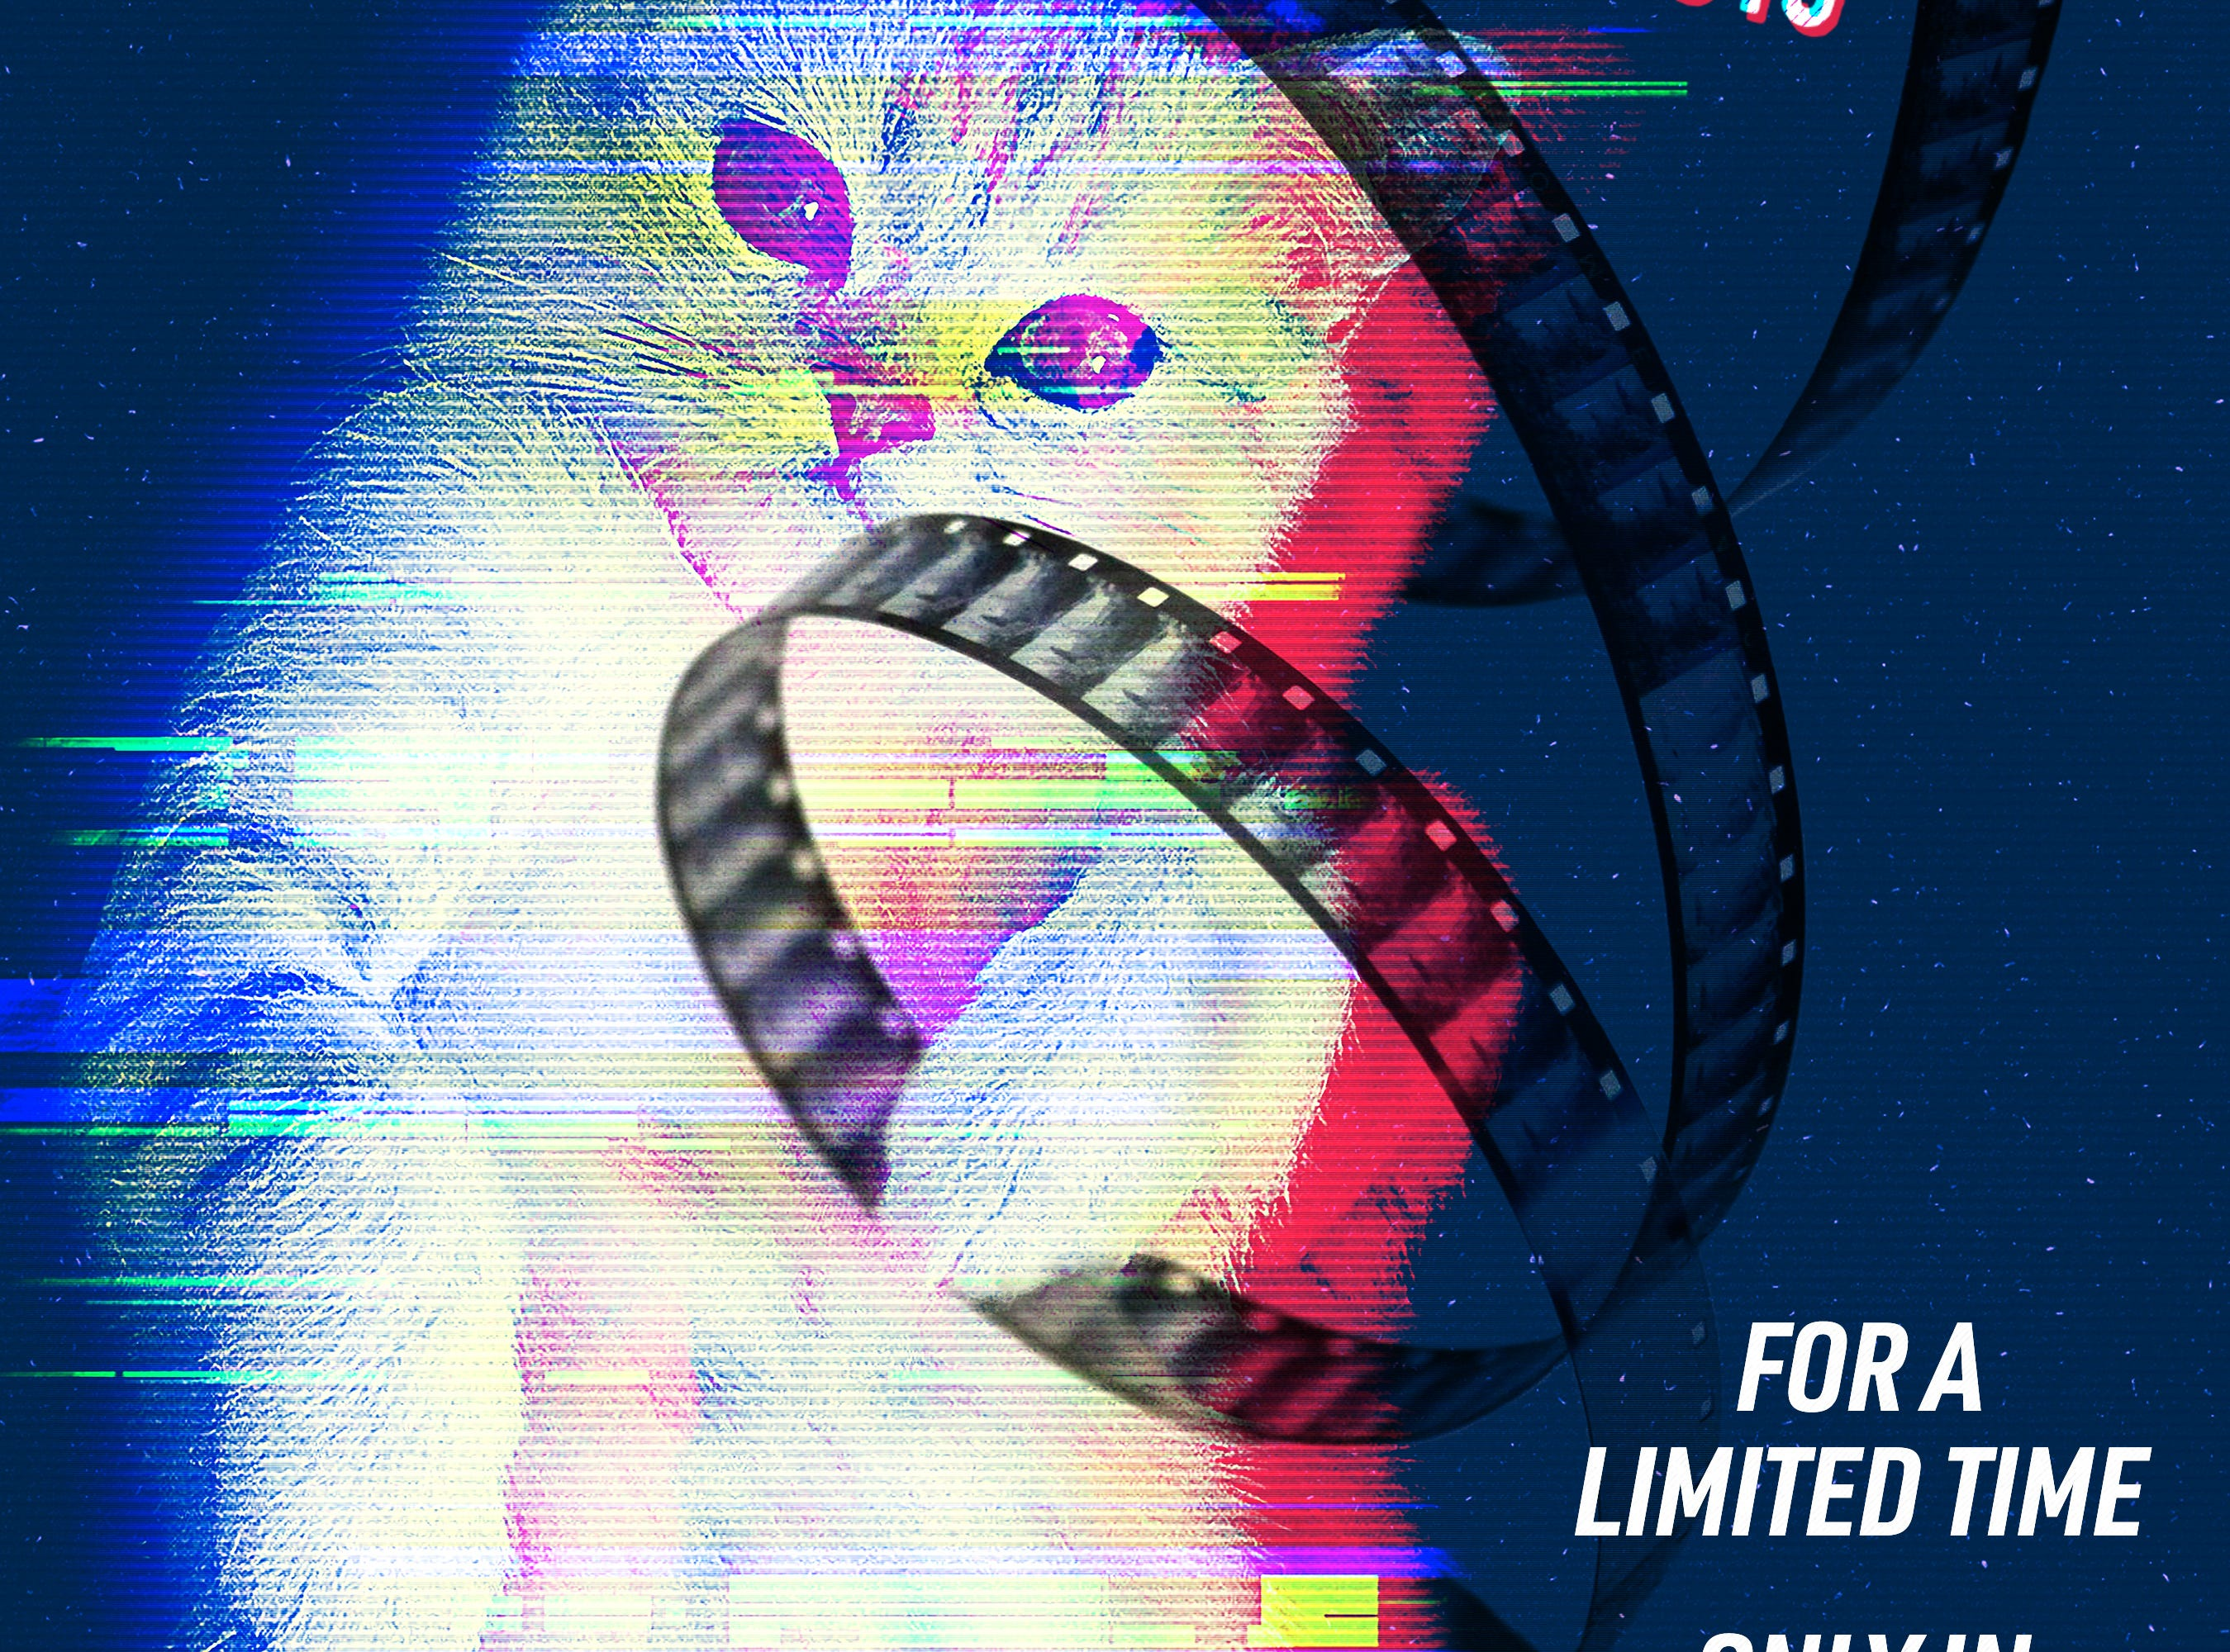 CatVideoFest 2019: A compilation of cat videos curated from submissions, music videos, animations and online content benefiting cats in need all over the world through partnerships with local cat charities/other organizations, 12:30 p.m. Sunday and 7:15 p.m. Monday, April 28-29, Salem Cinema, 1127 Broadway St. NE. $12 in advance, $15 day of; 10 percent of the proceeds will go to the Willamette Humane Society and Salem Friends of Felines. https://bit.ly/2IM6ksO.